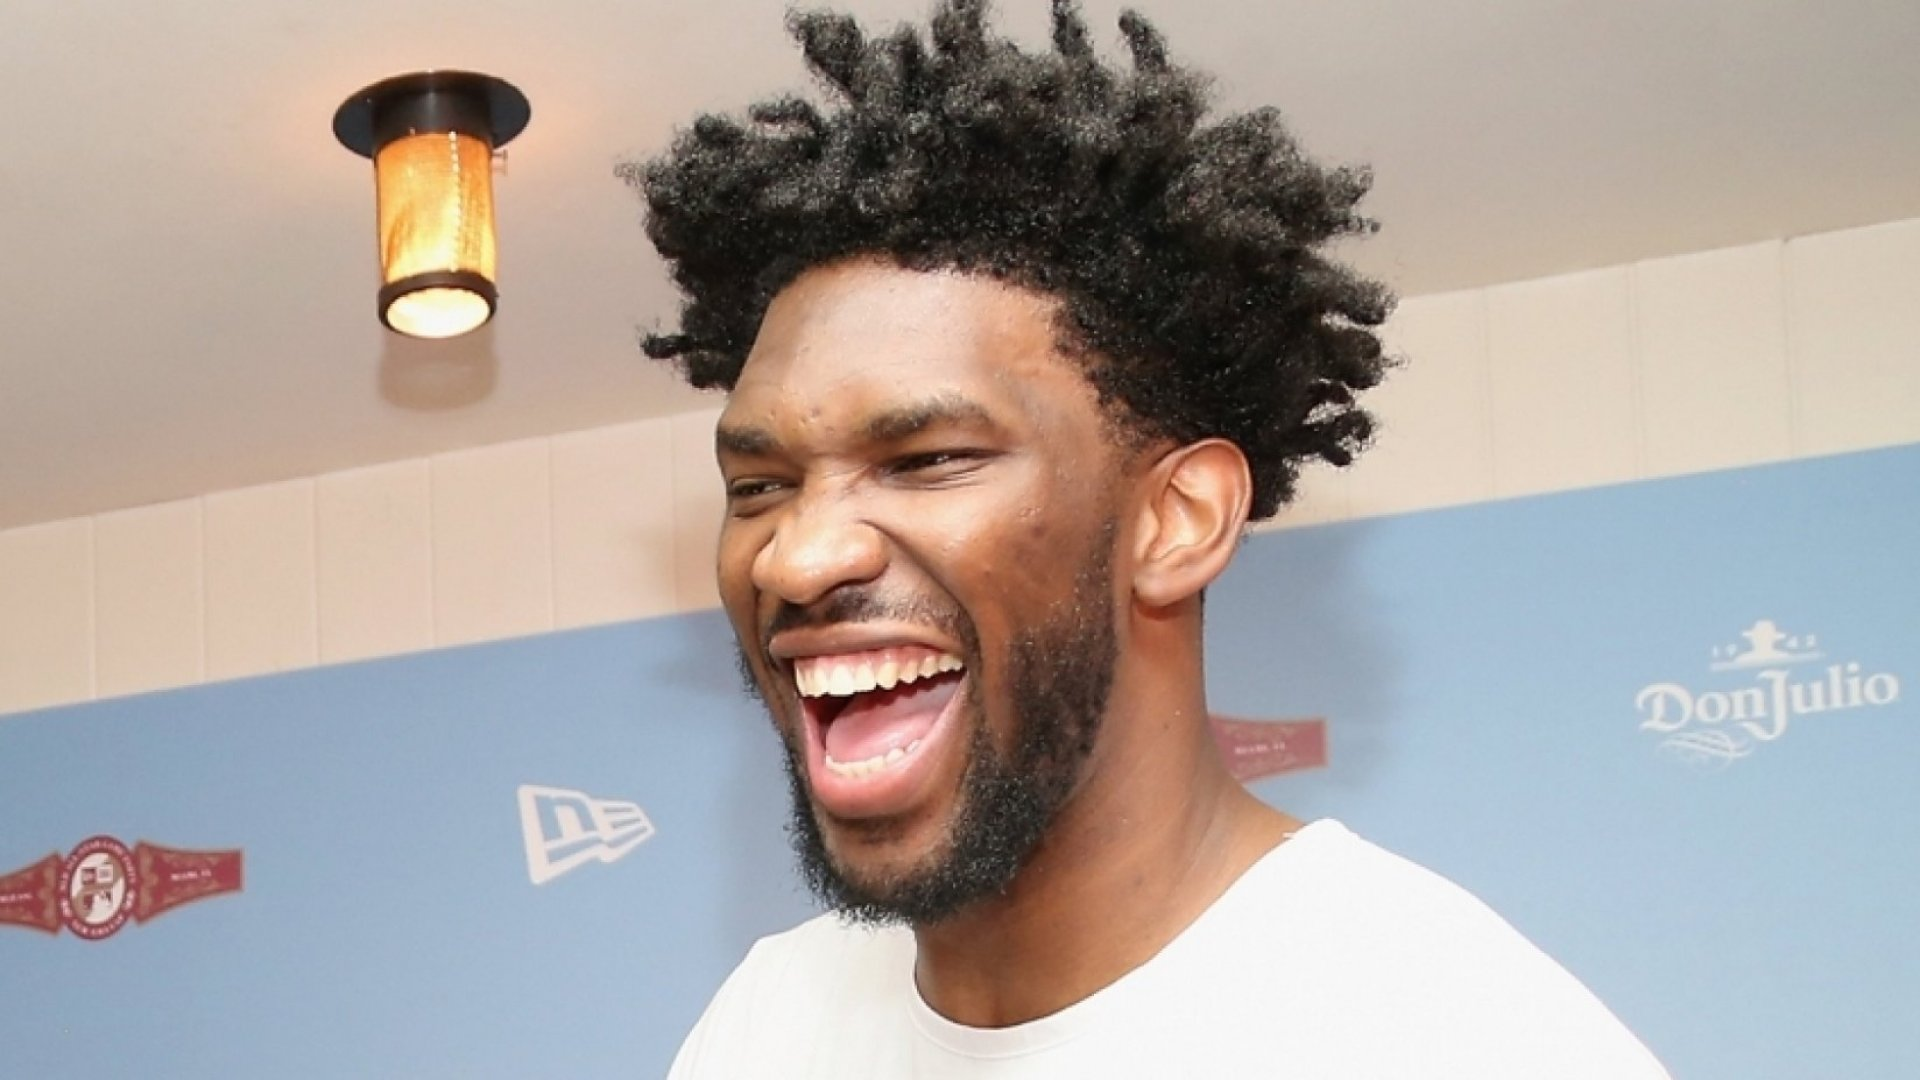 76ers Joel Embiid Becoming a Social Media Giant Is a Major Lesson in Personal Branding. Here's Why